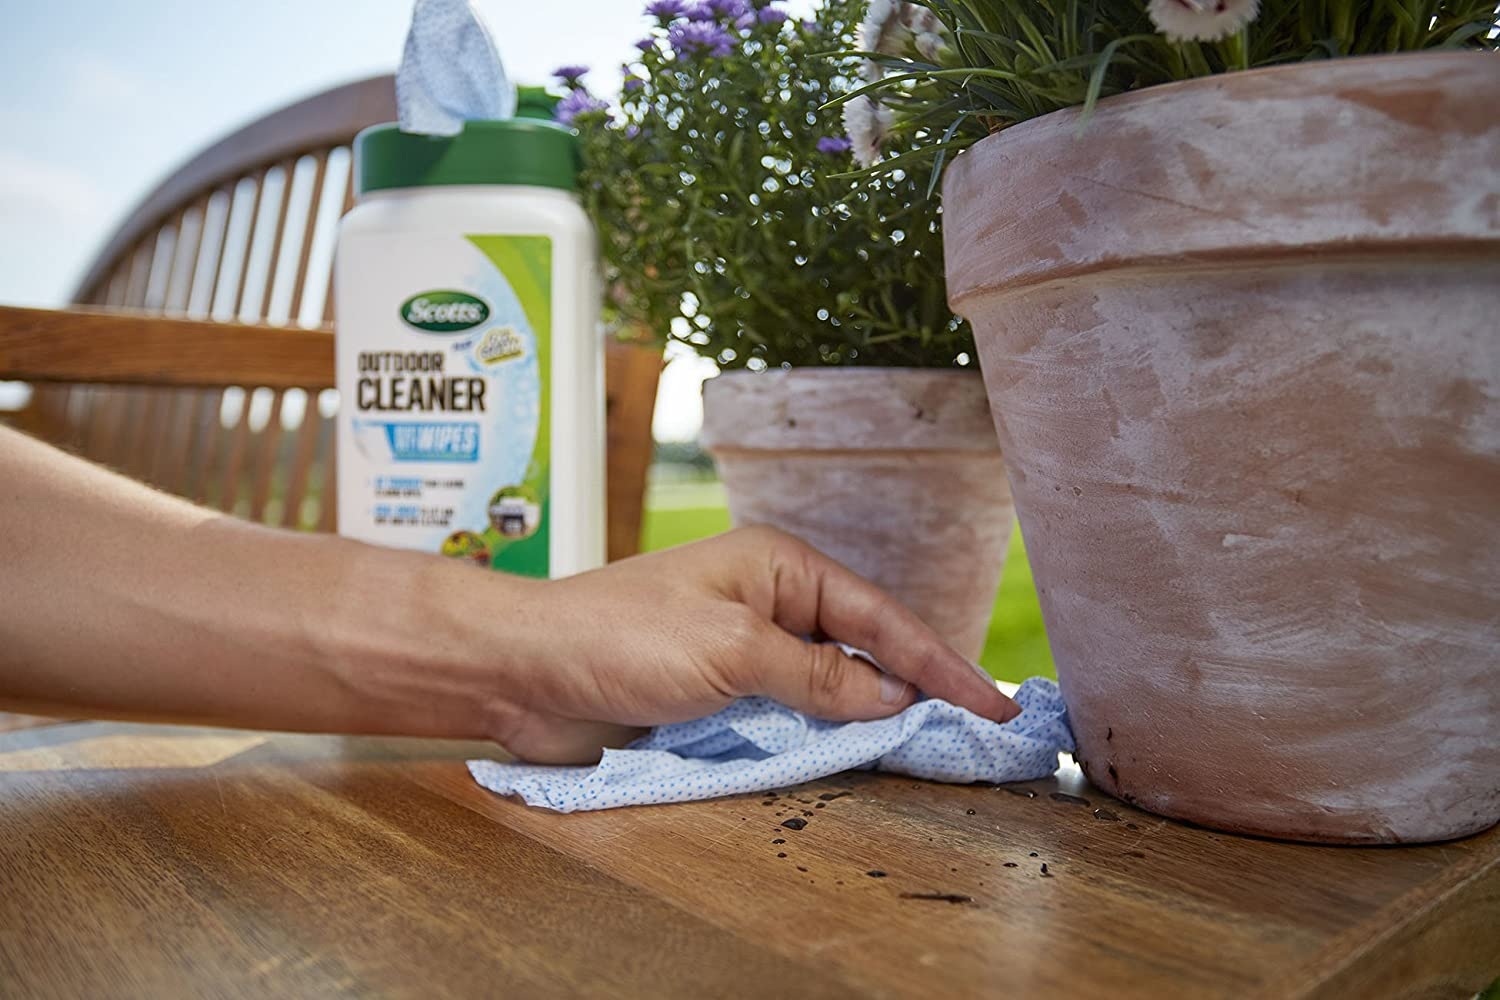 Scotts 51601 Plus Oxi Clean Outdoor Cleaner Wipes